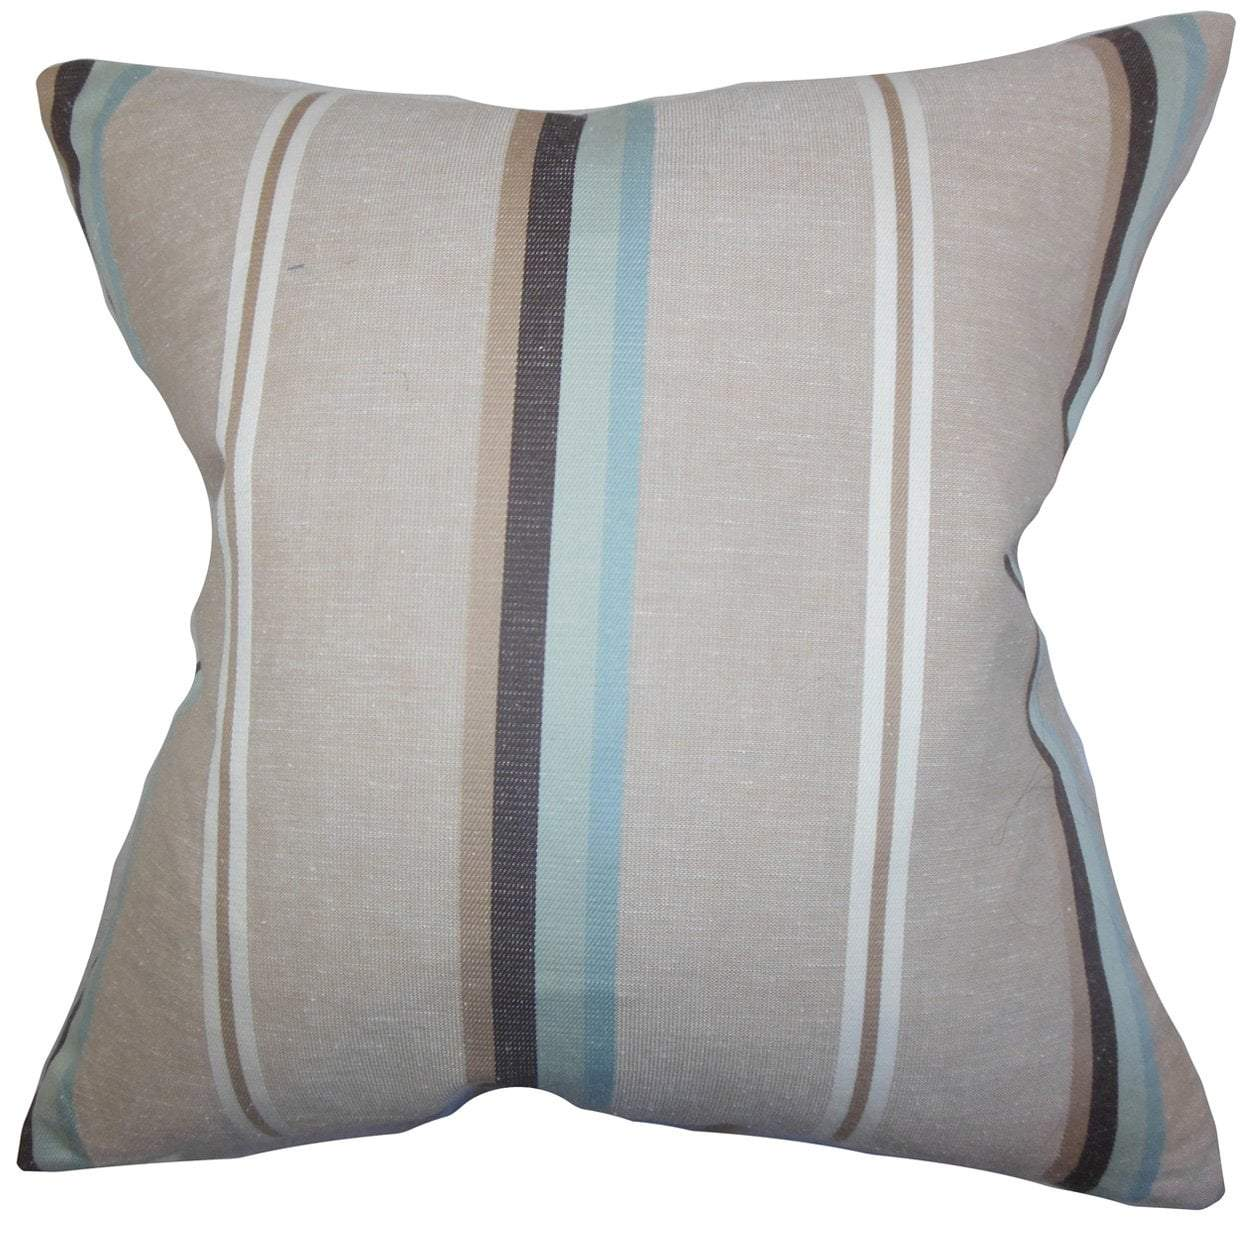 Gray Linen Striped Contemporary Throw Pillow Cover